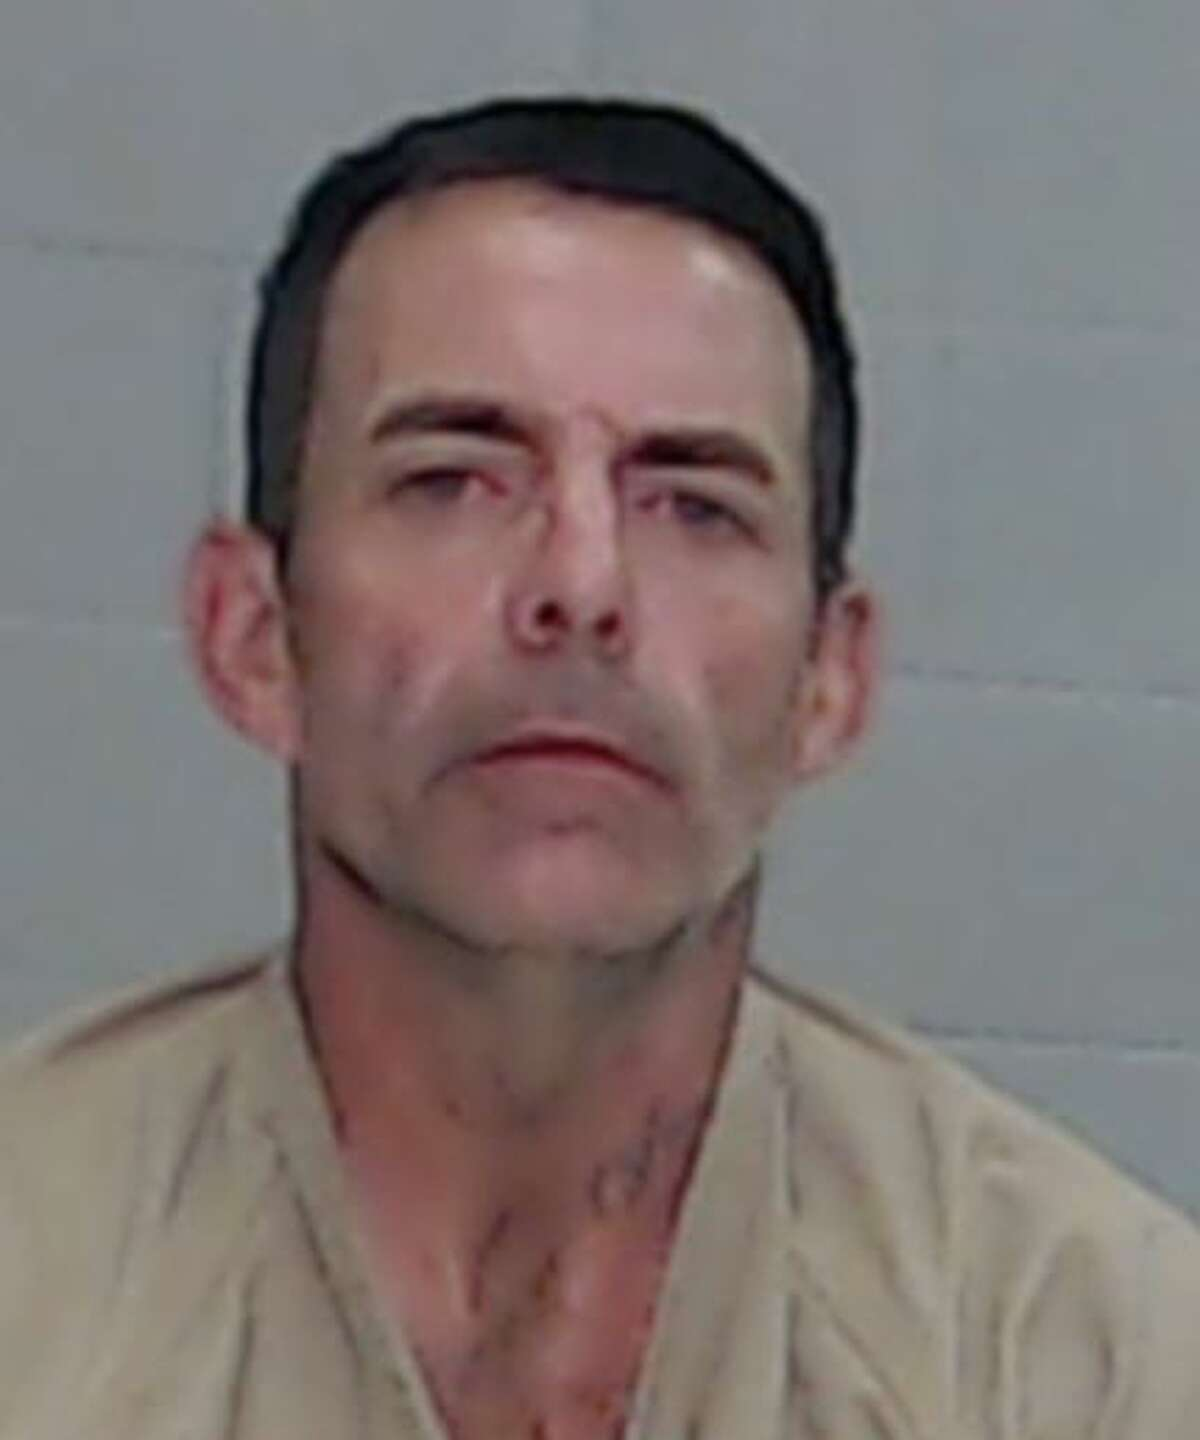 OPD is asking for the public's help in locating a person of interest in connection to a homicide that occurred last month in Central Odessa. Marc James Morris, 44 years of age, is currently wanted for questioning only.